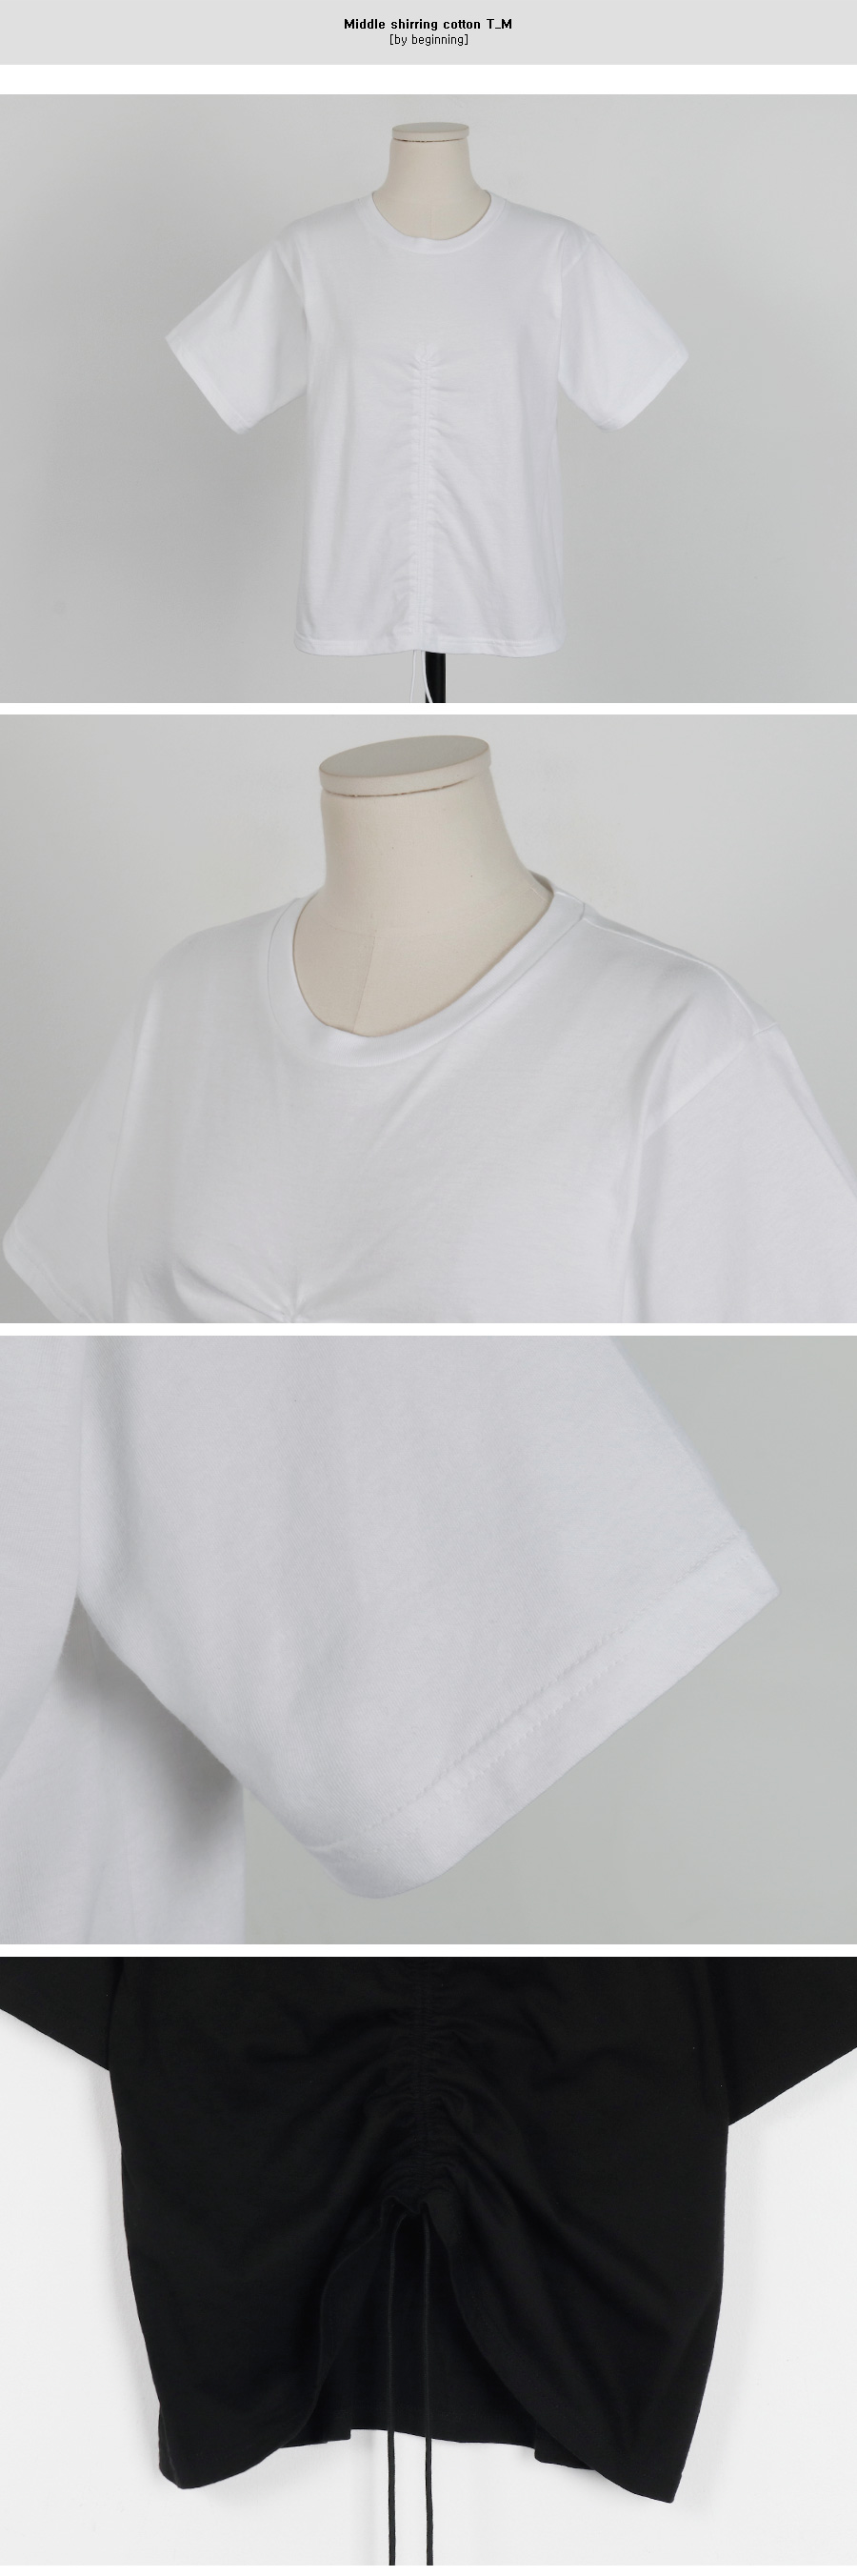 Middle shirring cotton T_M